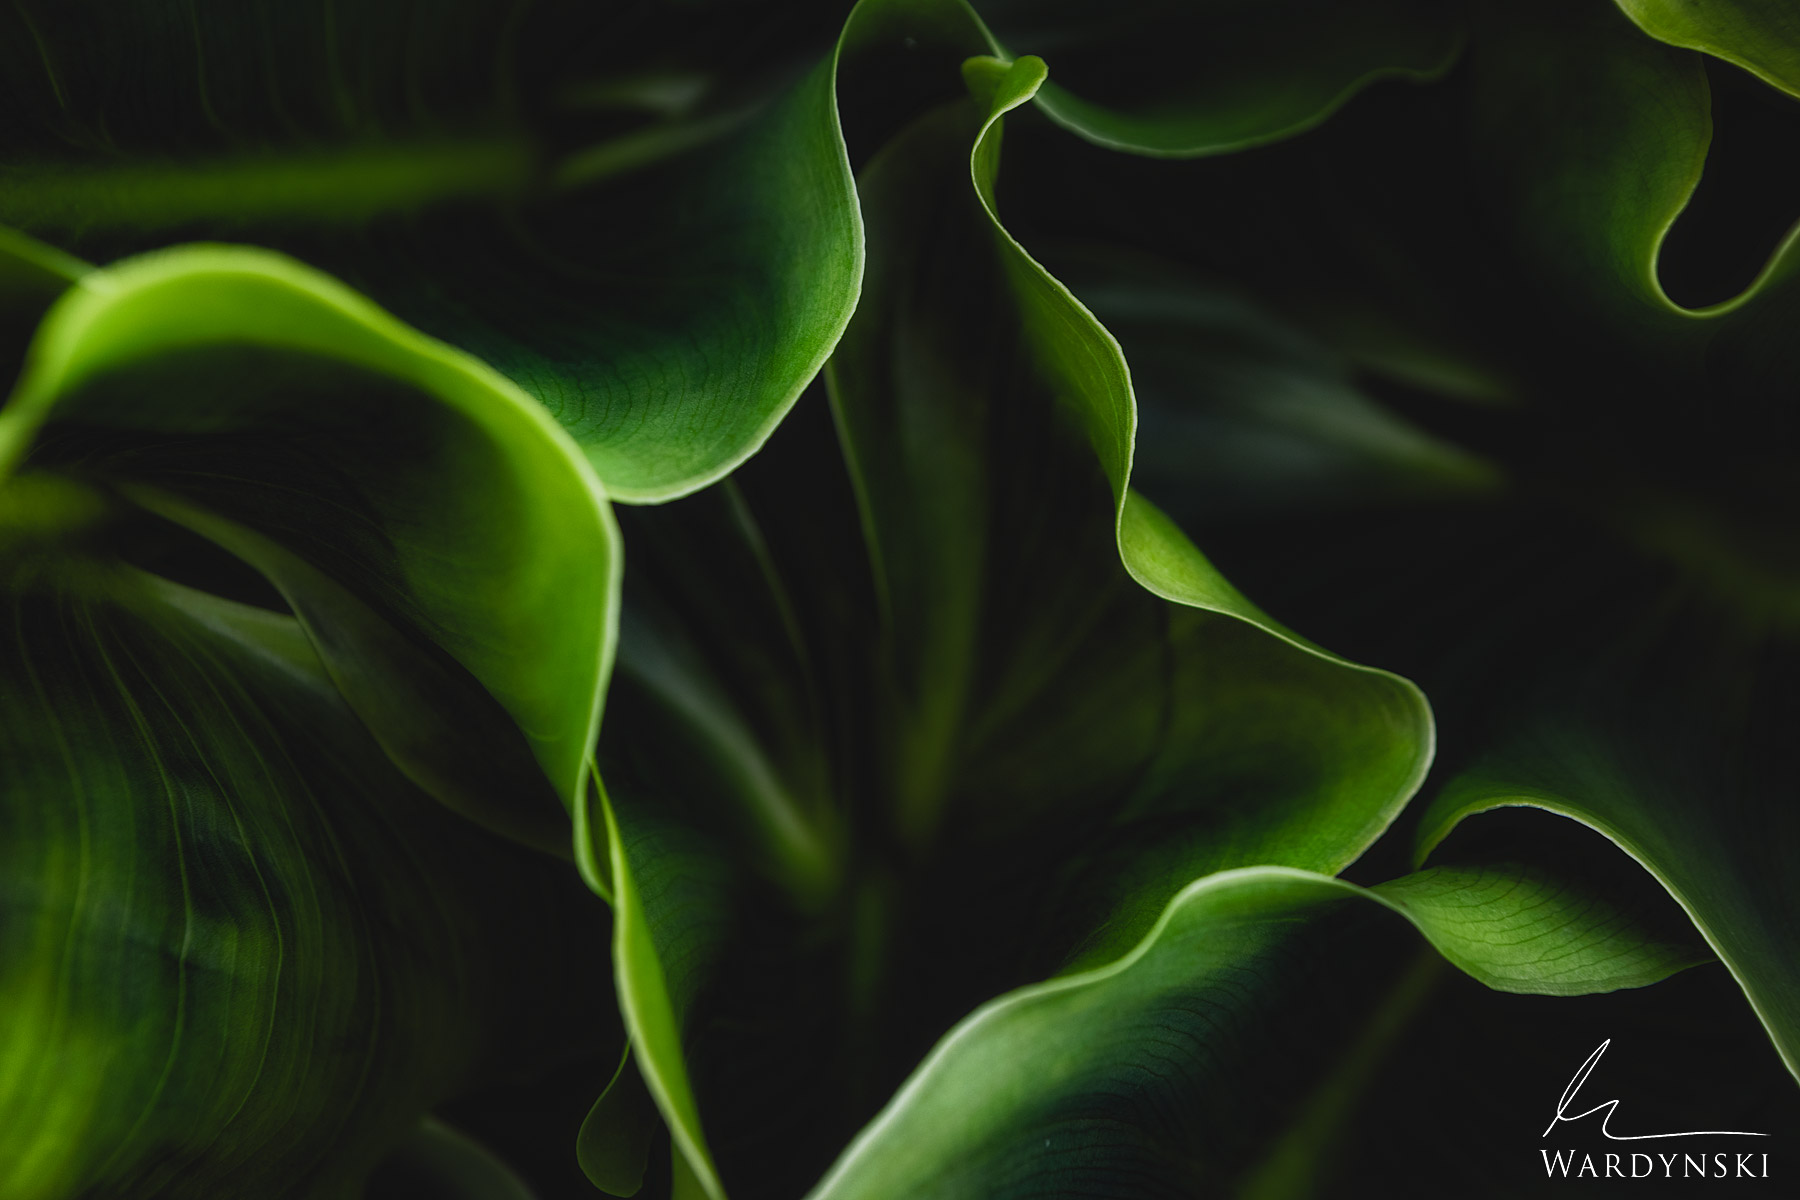 Fine Art Print | Limited Edition of 50 (Available in Sepia Tone) Green Cala Lilly leaves wave, bend and fold into one another...